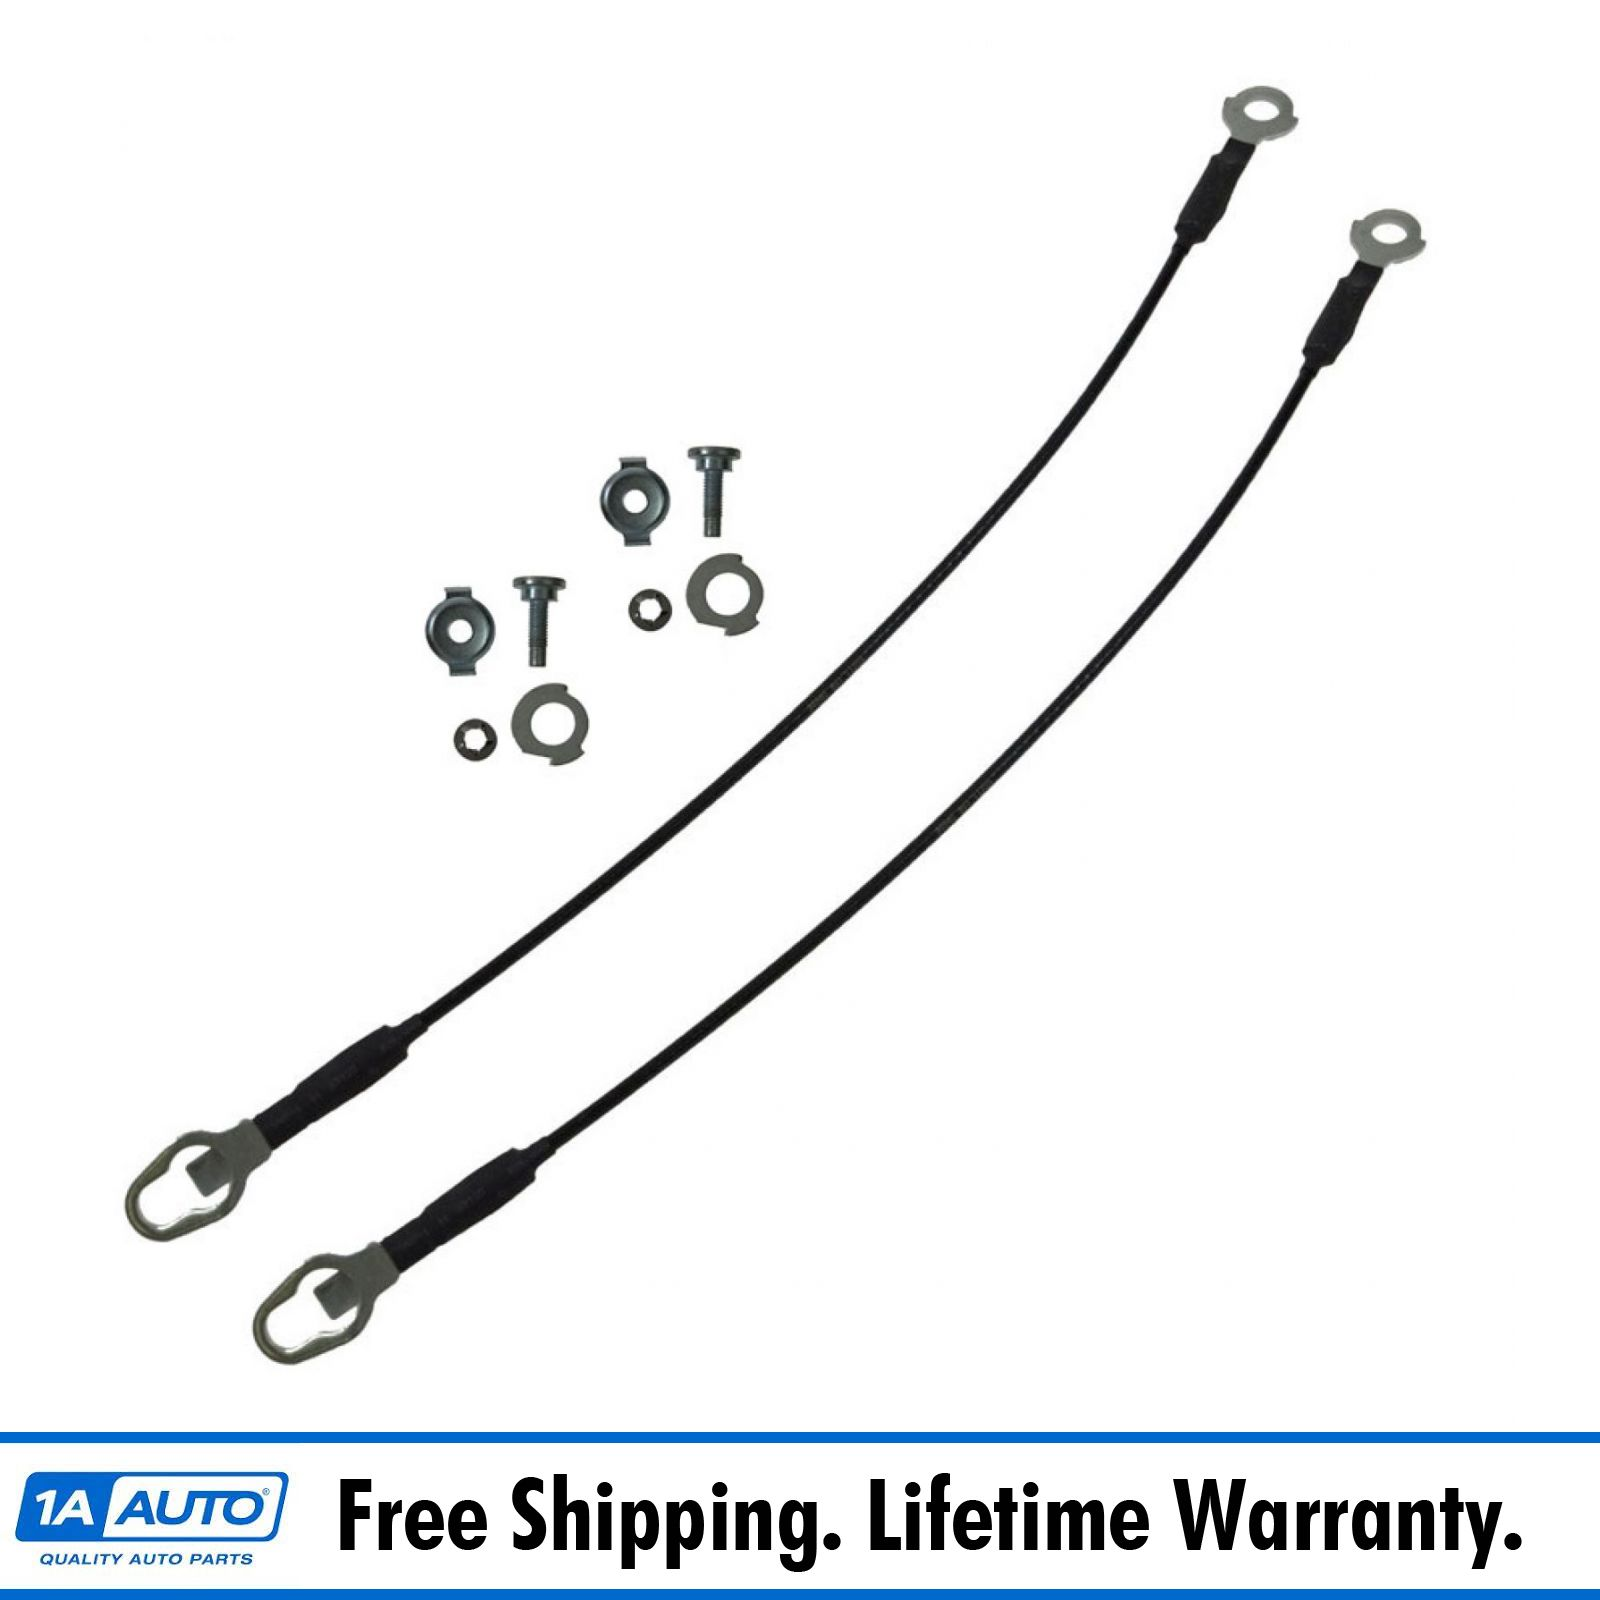 Dorman 38502 Tailgate Cable /& Mounting Hardware Pair Set for Ford F150 Mark LT